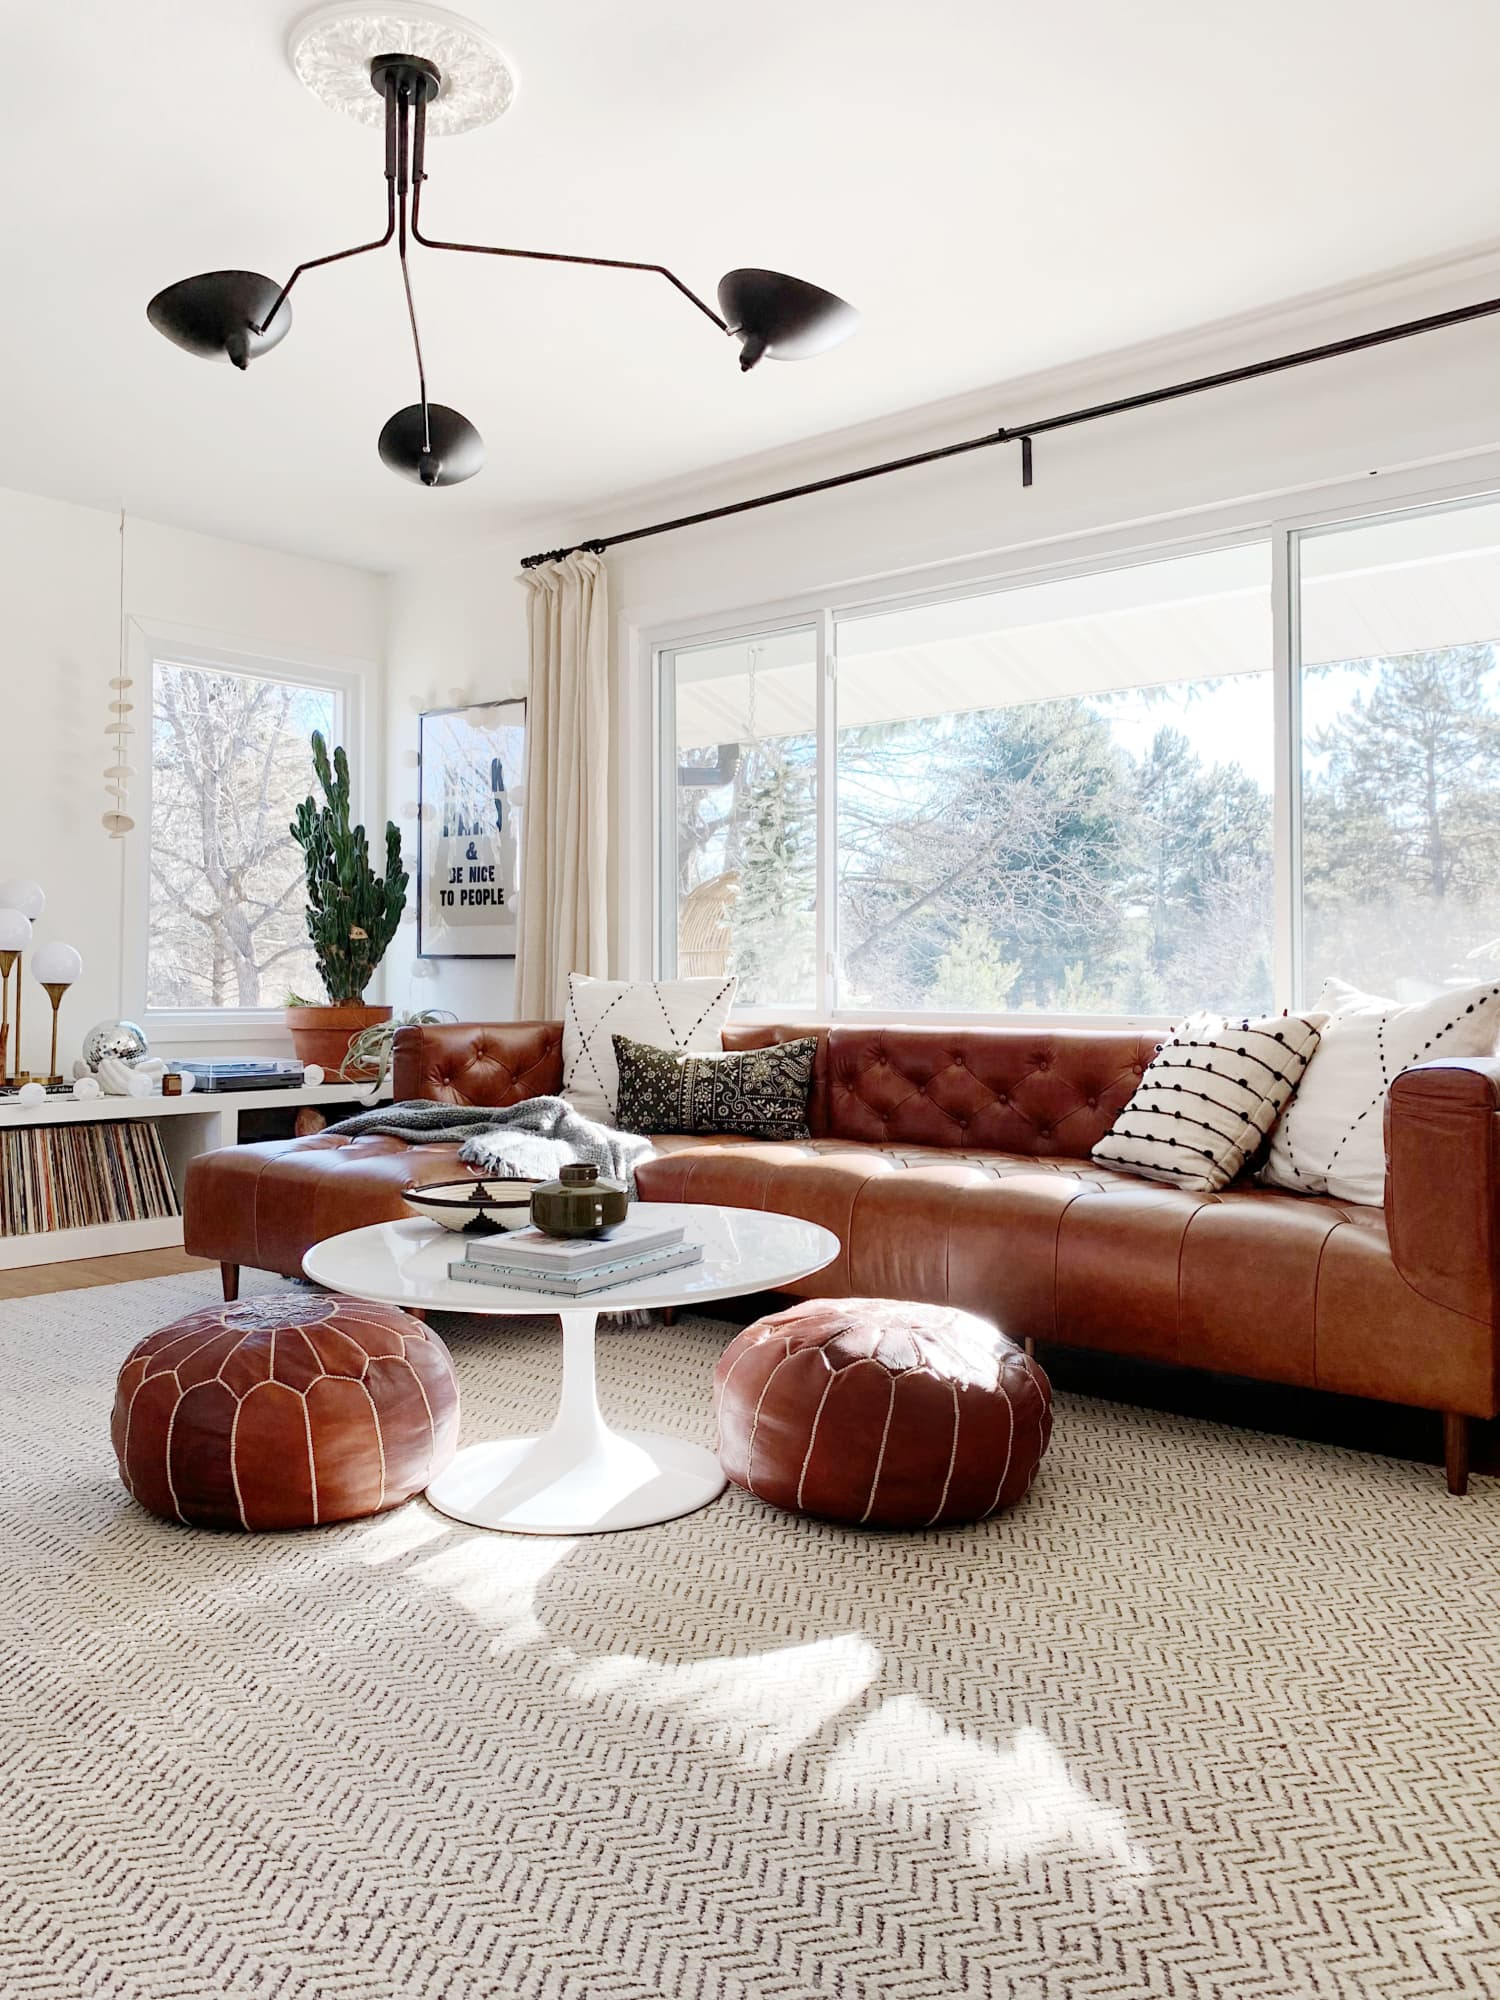 6 Ways to Re-think Your Living Room Seating Plan…No Matter Its Size